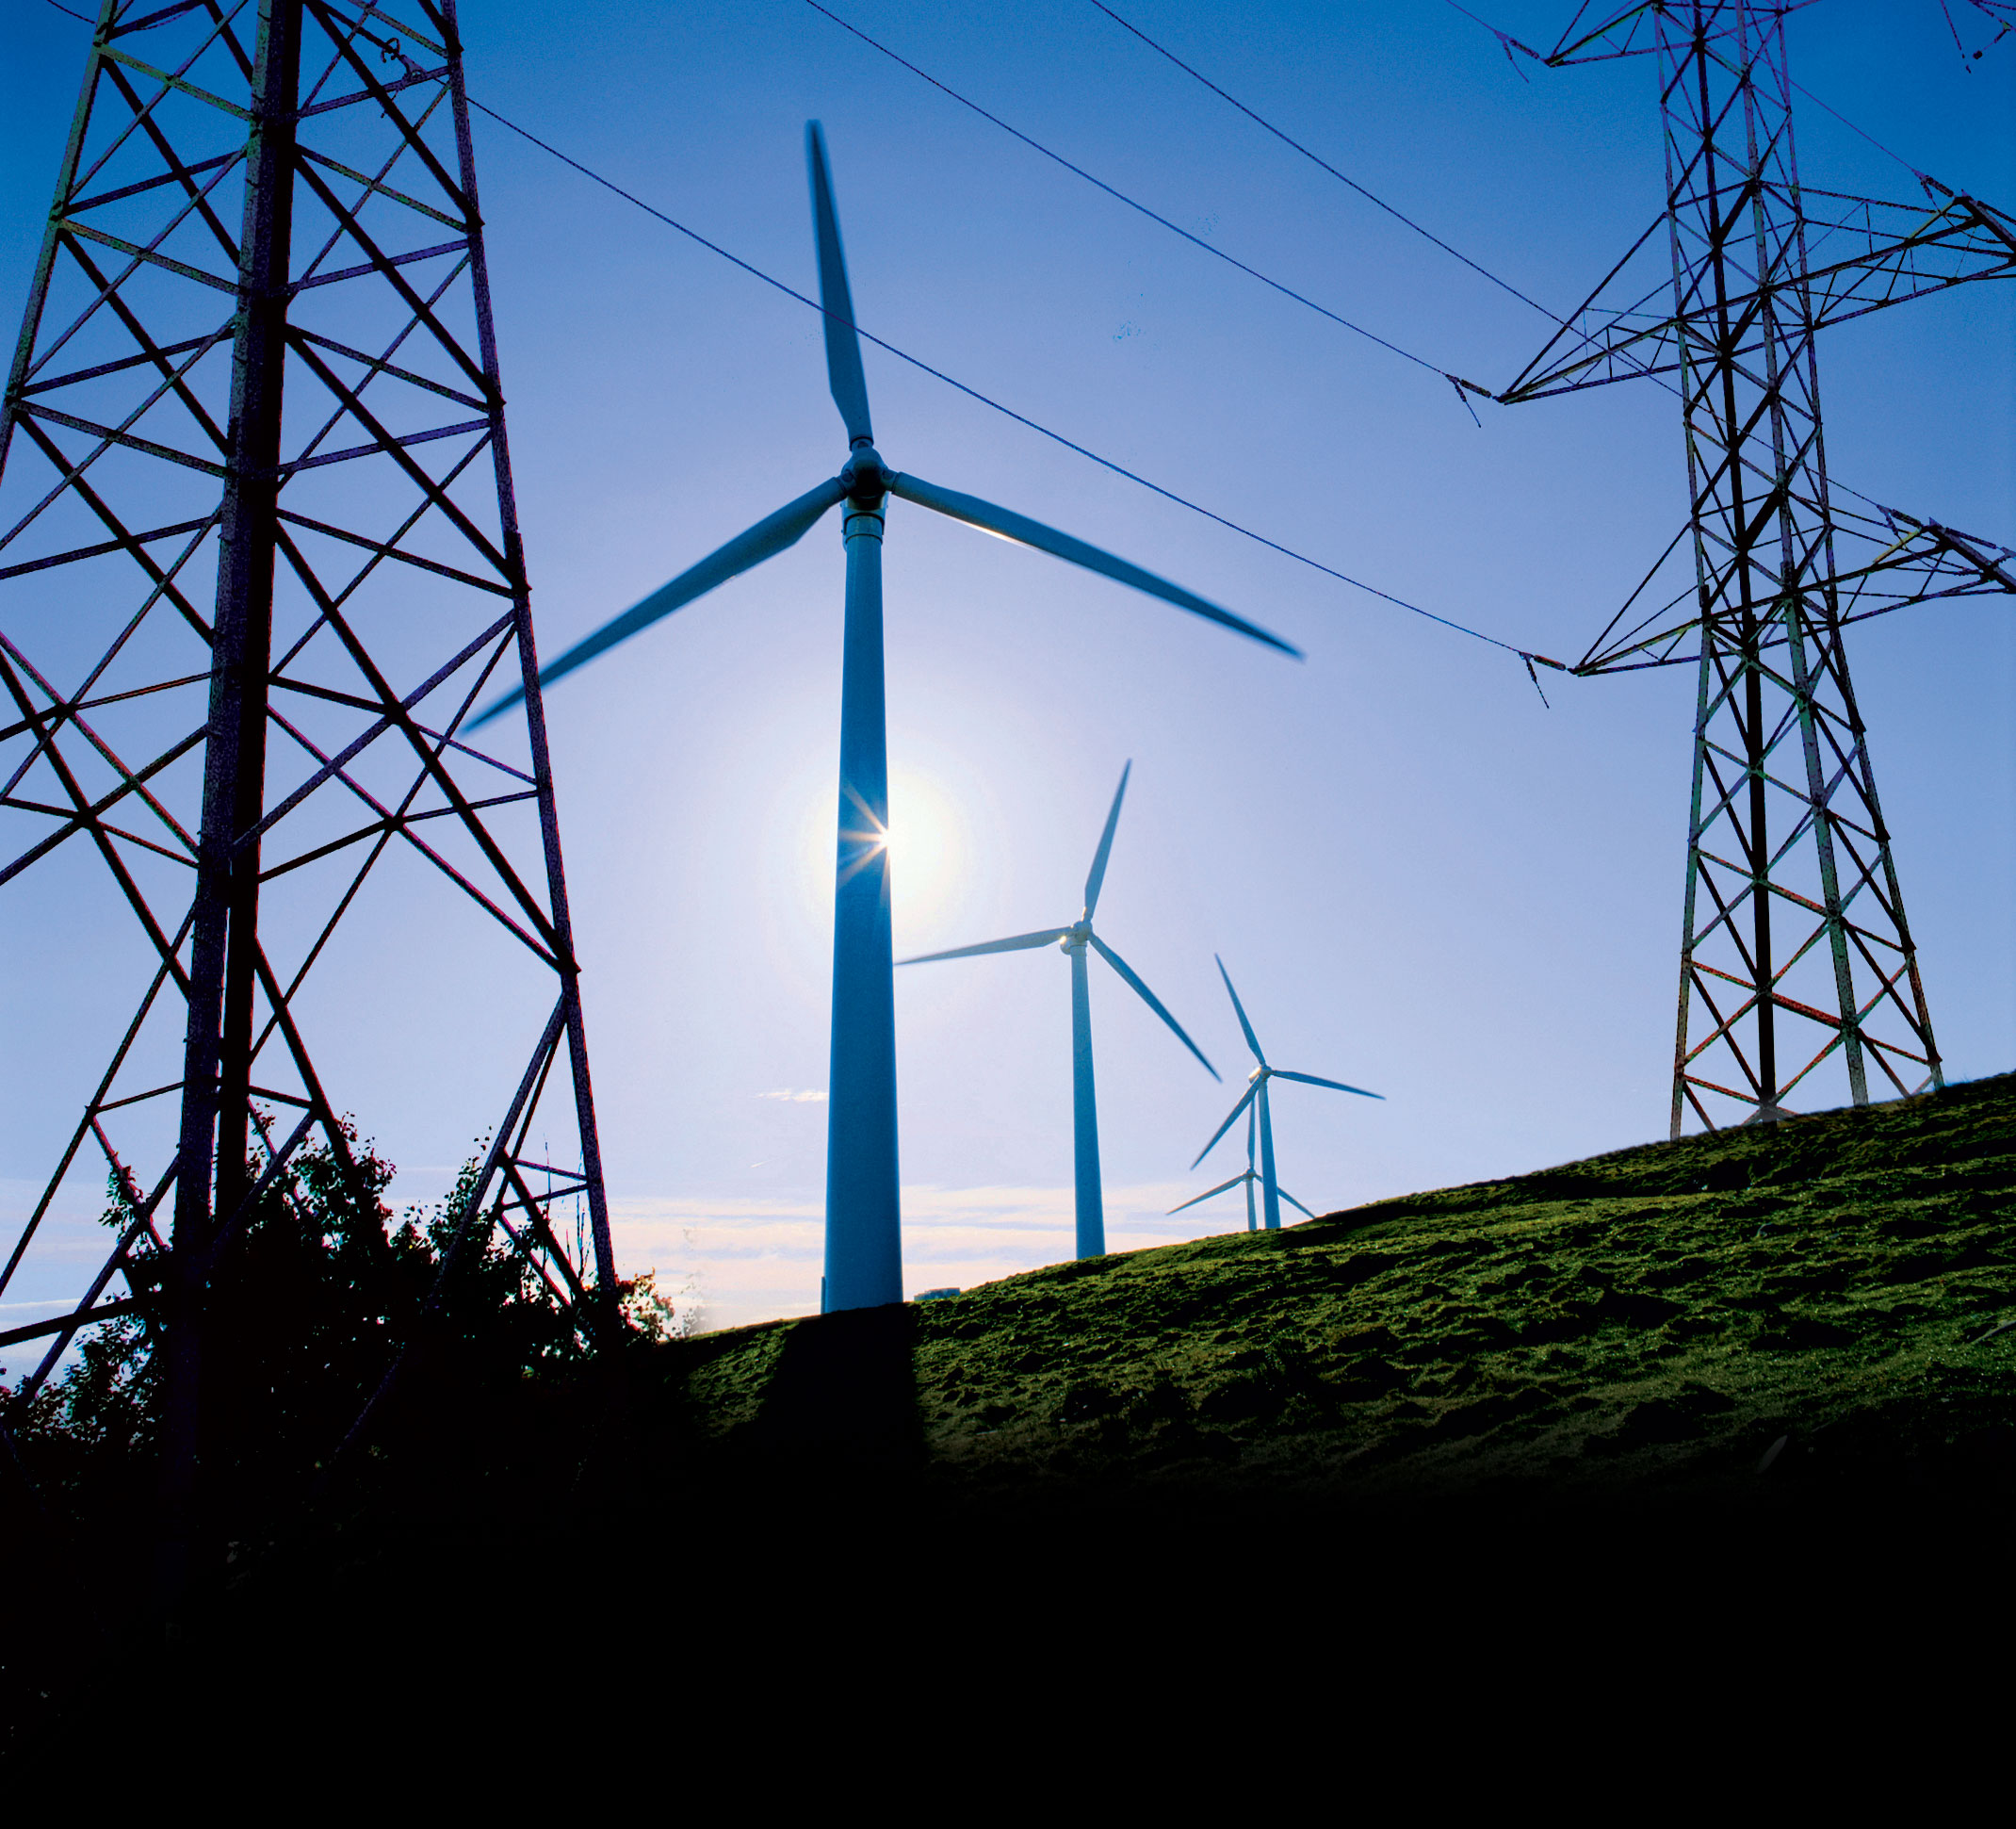 Modern high-voltage power transmission infrastructure is needed to unlock abundant clean energy resources in distant locations and move that energy to the cities and towns where it's needed.